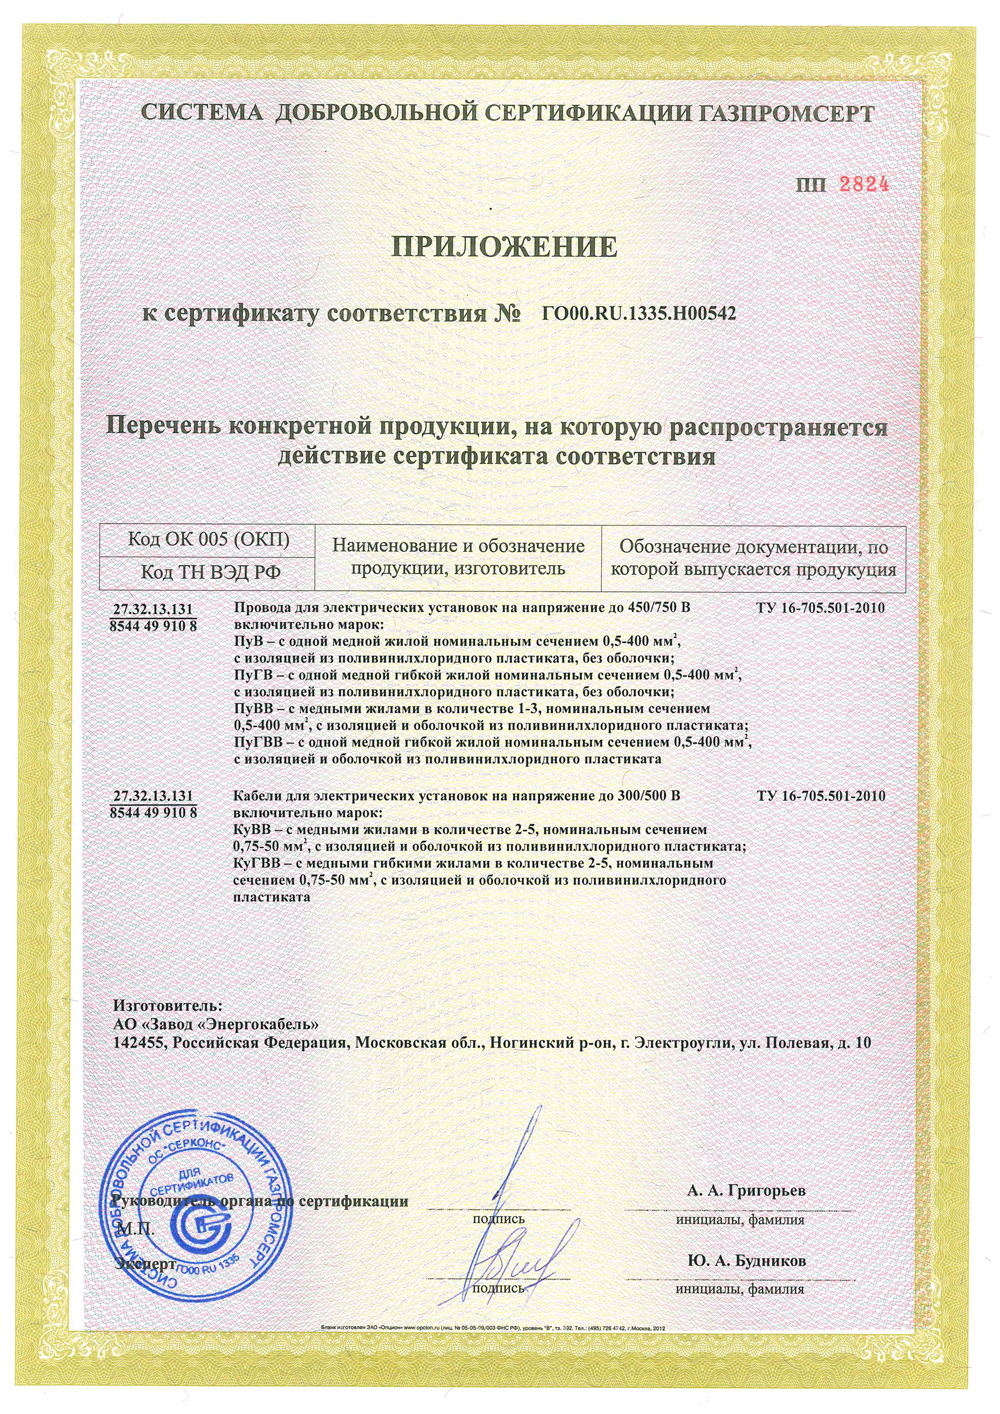 The appendix to the certificate of Conformity № ГО00.RU.1335.Н00542